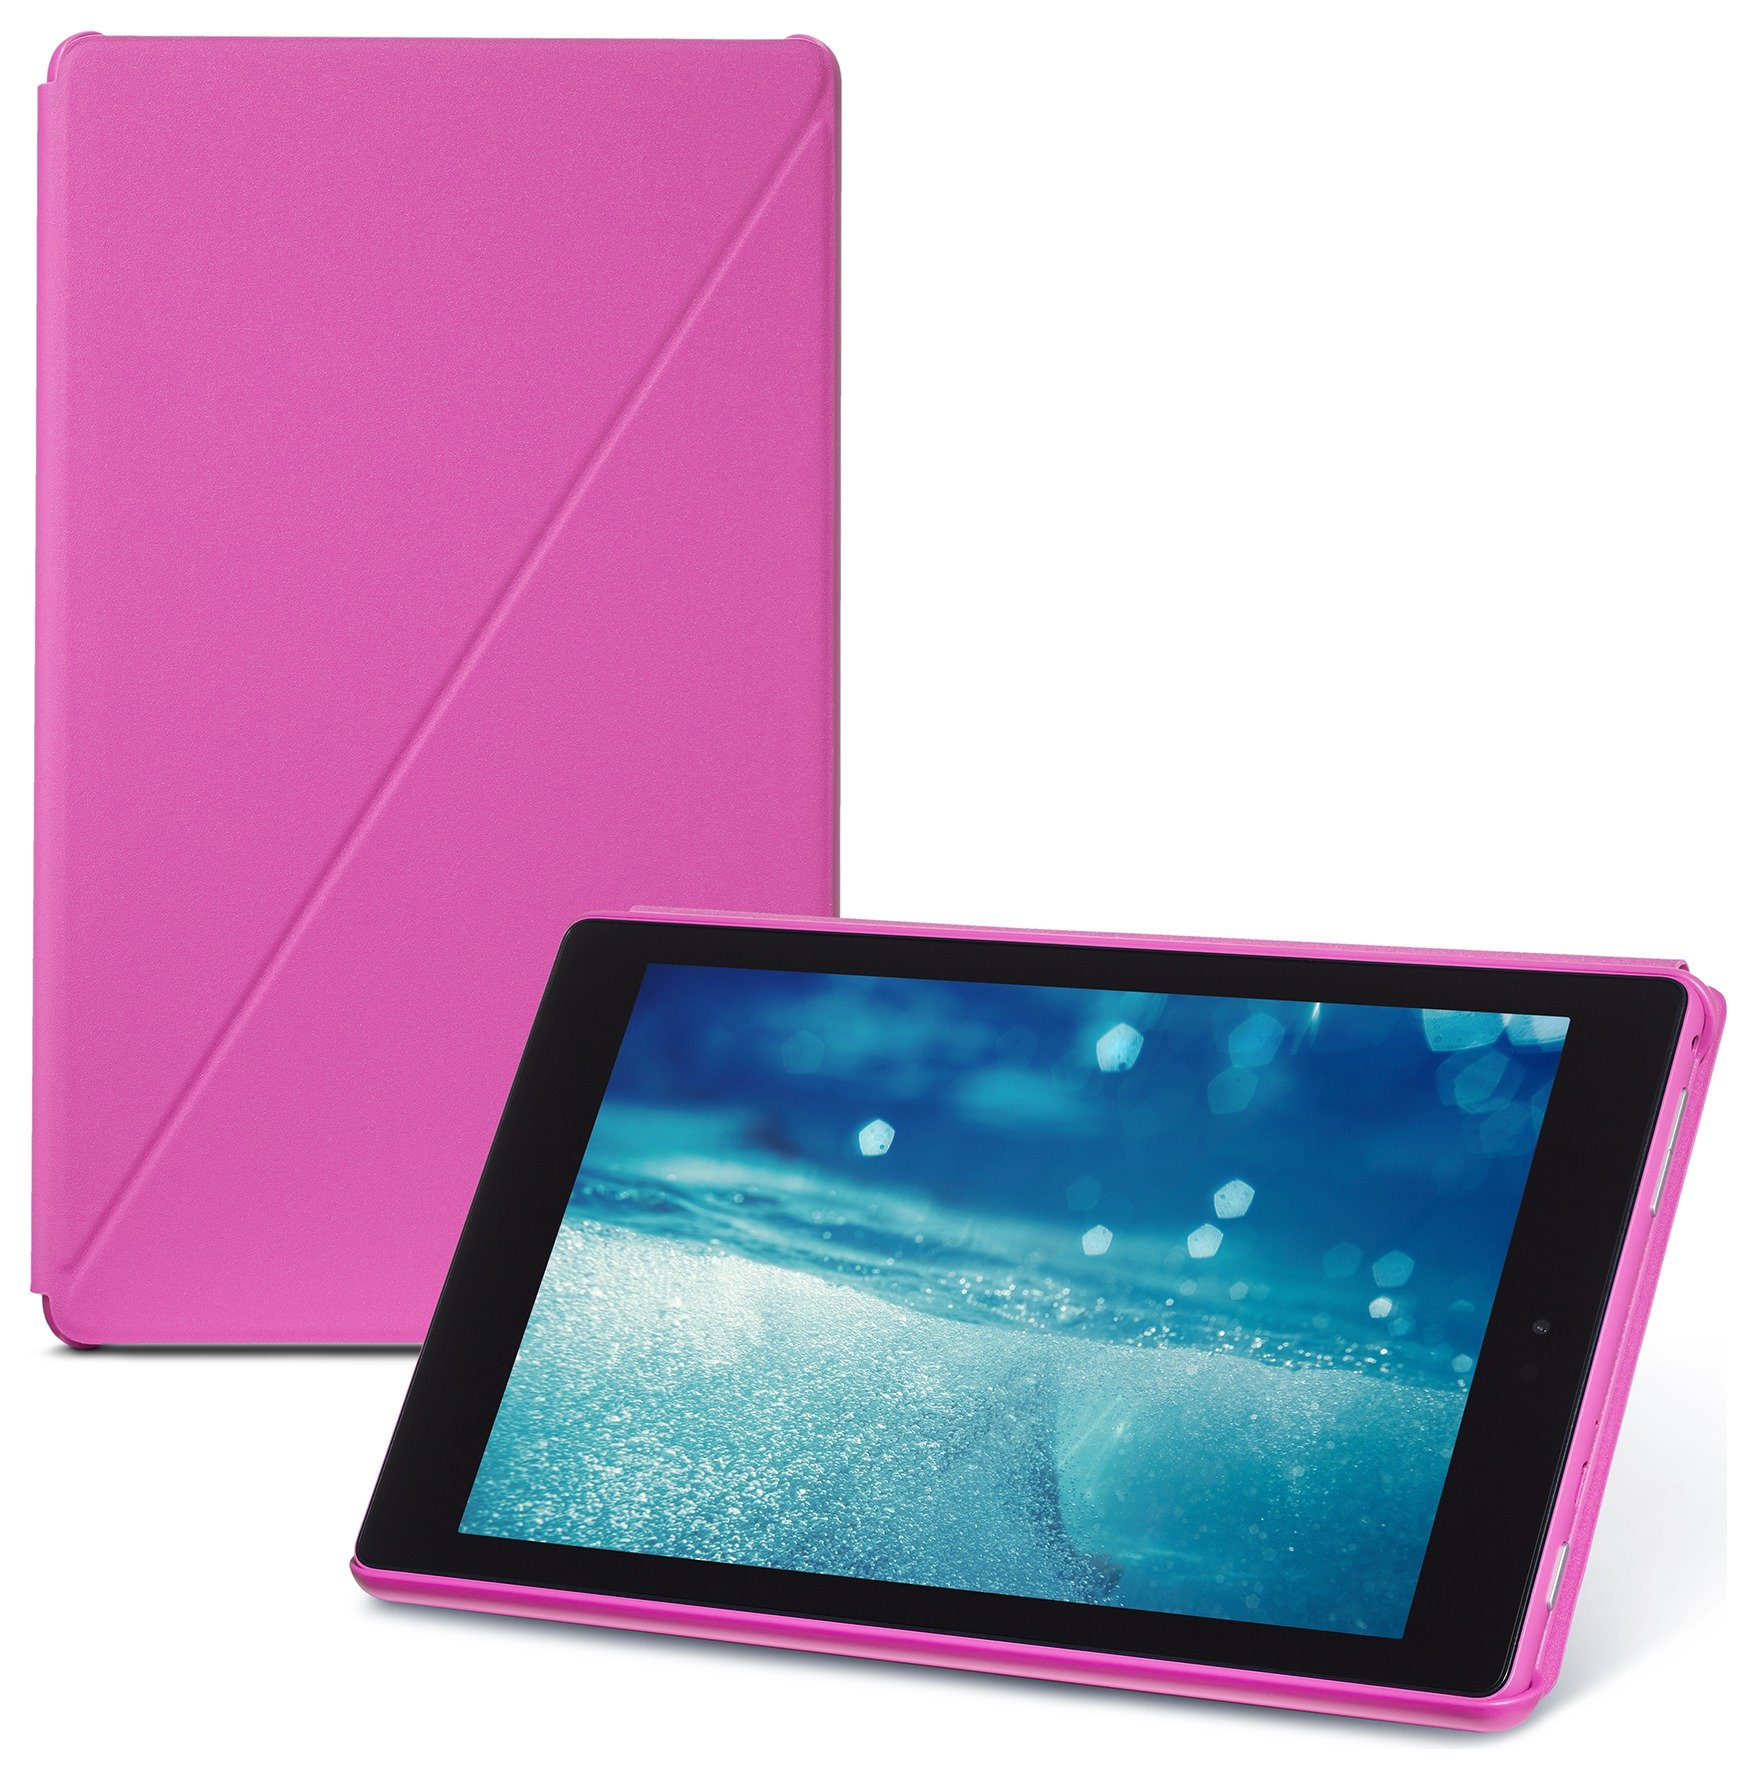 Image of Amazon Fire HD 8 Cover - Magenta Pink.